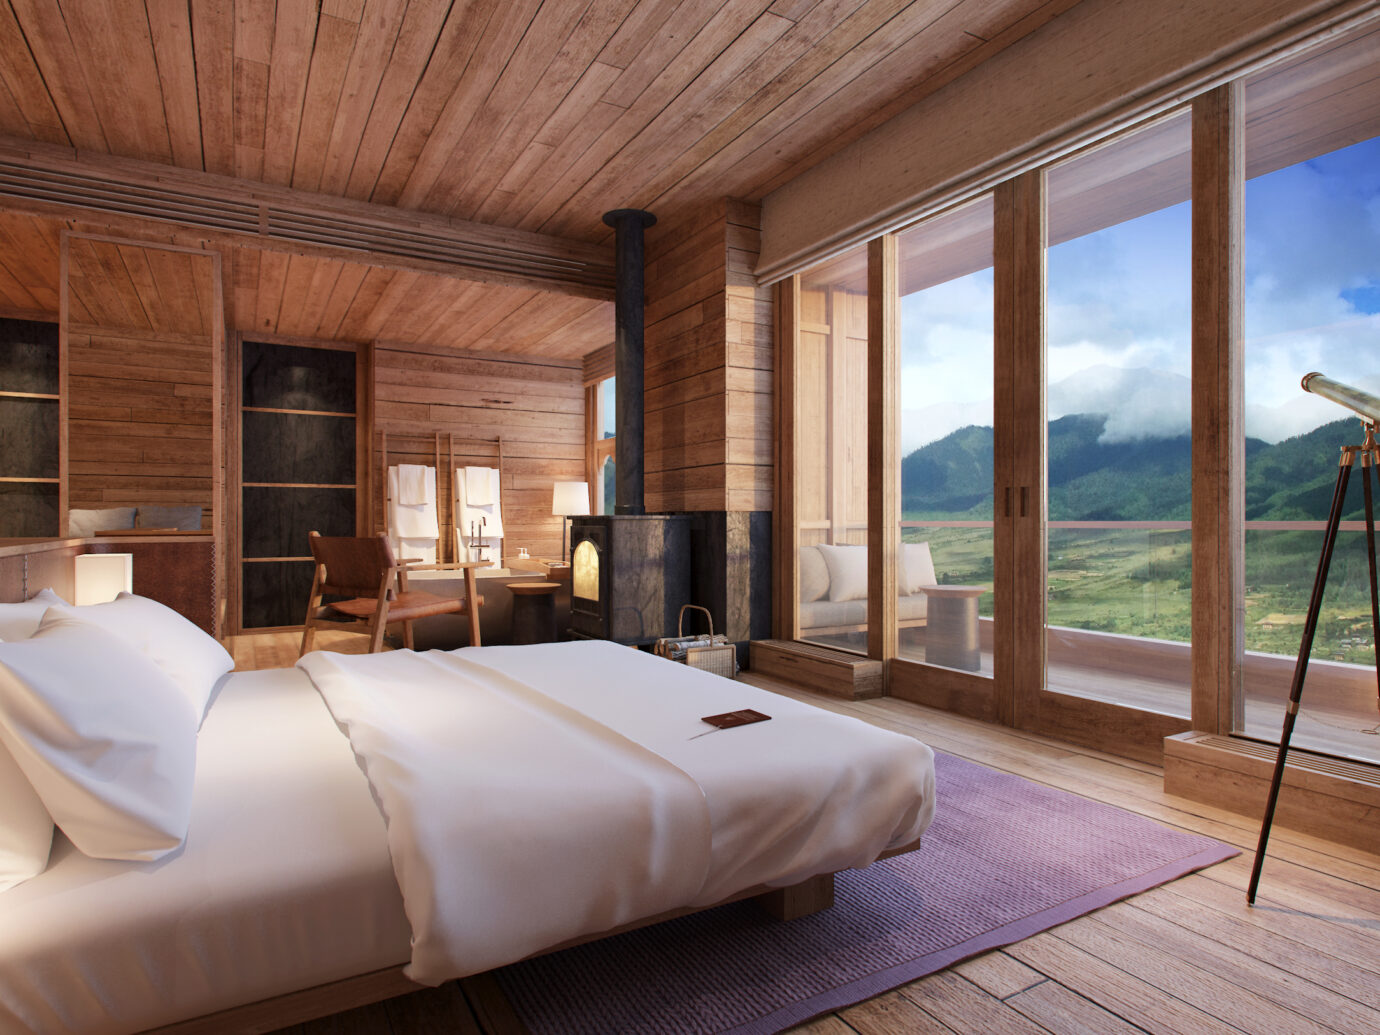 Six Senses Bhutan guest room